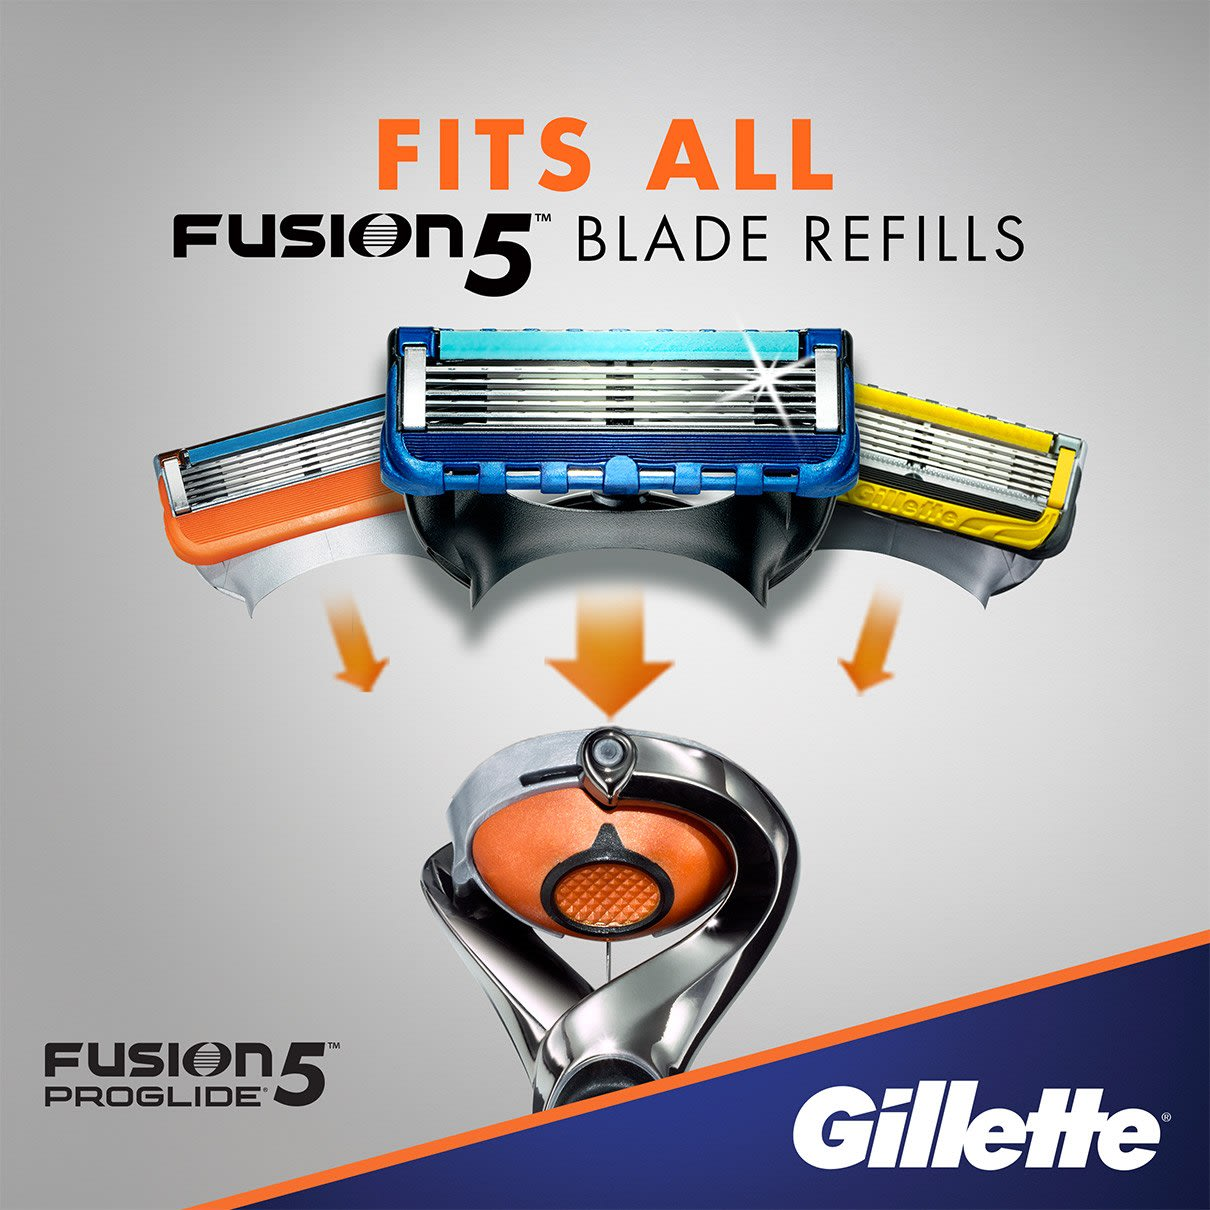 Fits all Fusion5 blade refills